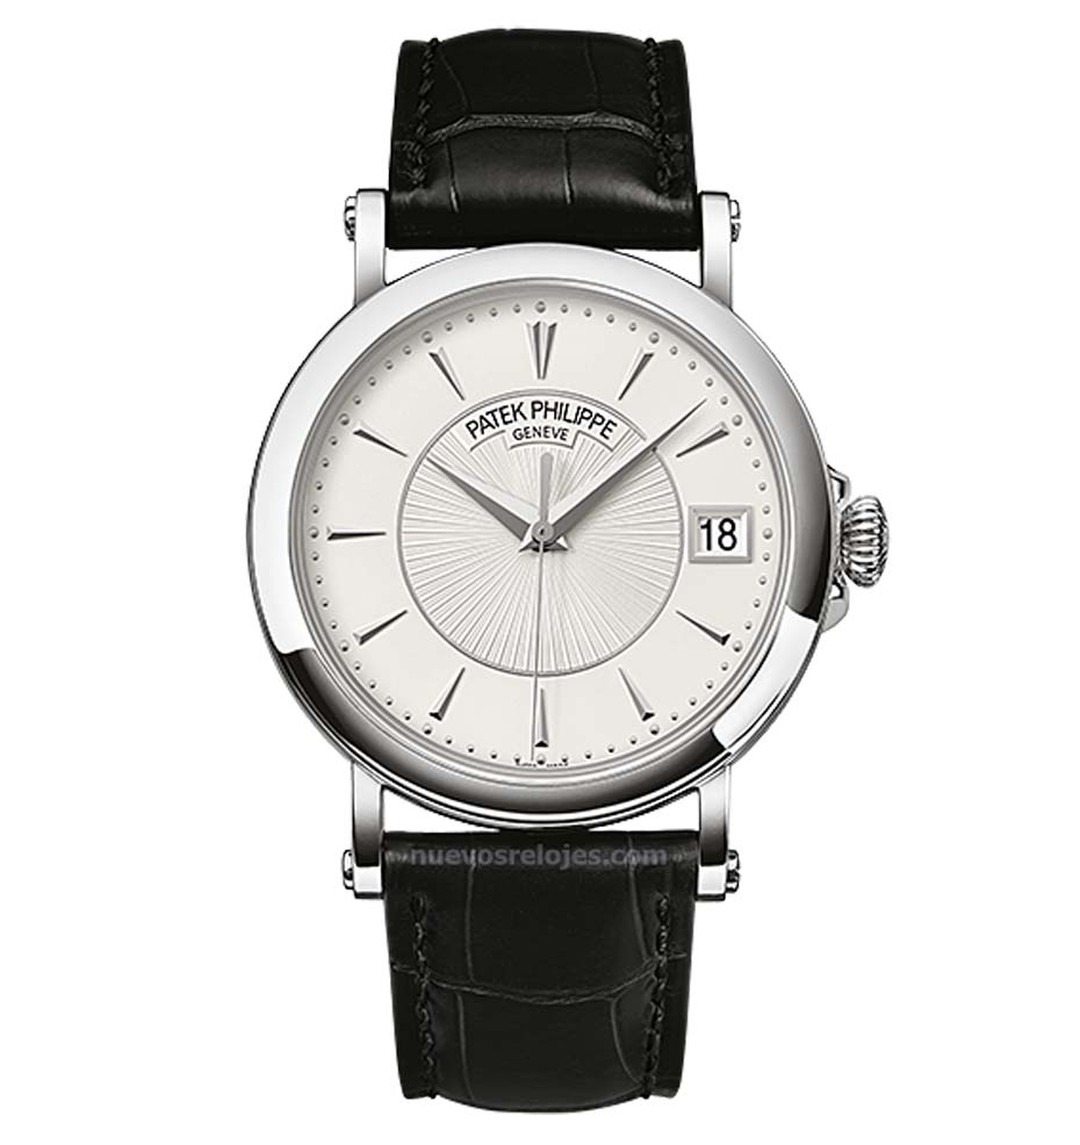 Patek Calatrava Ref. 5153G men's watch. The sobriety of the 38mm white gold case is enhanced with a hand-guilloché dial with a smart, white pleated pattern in the centre and a traditional onion crown.